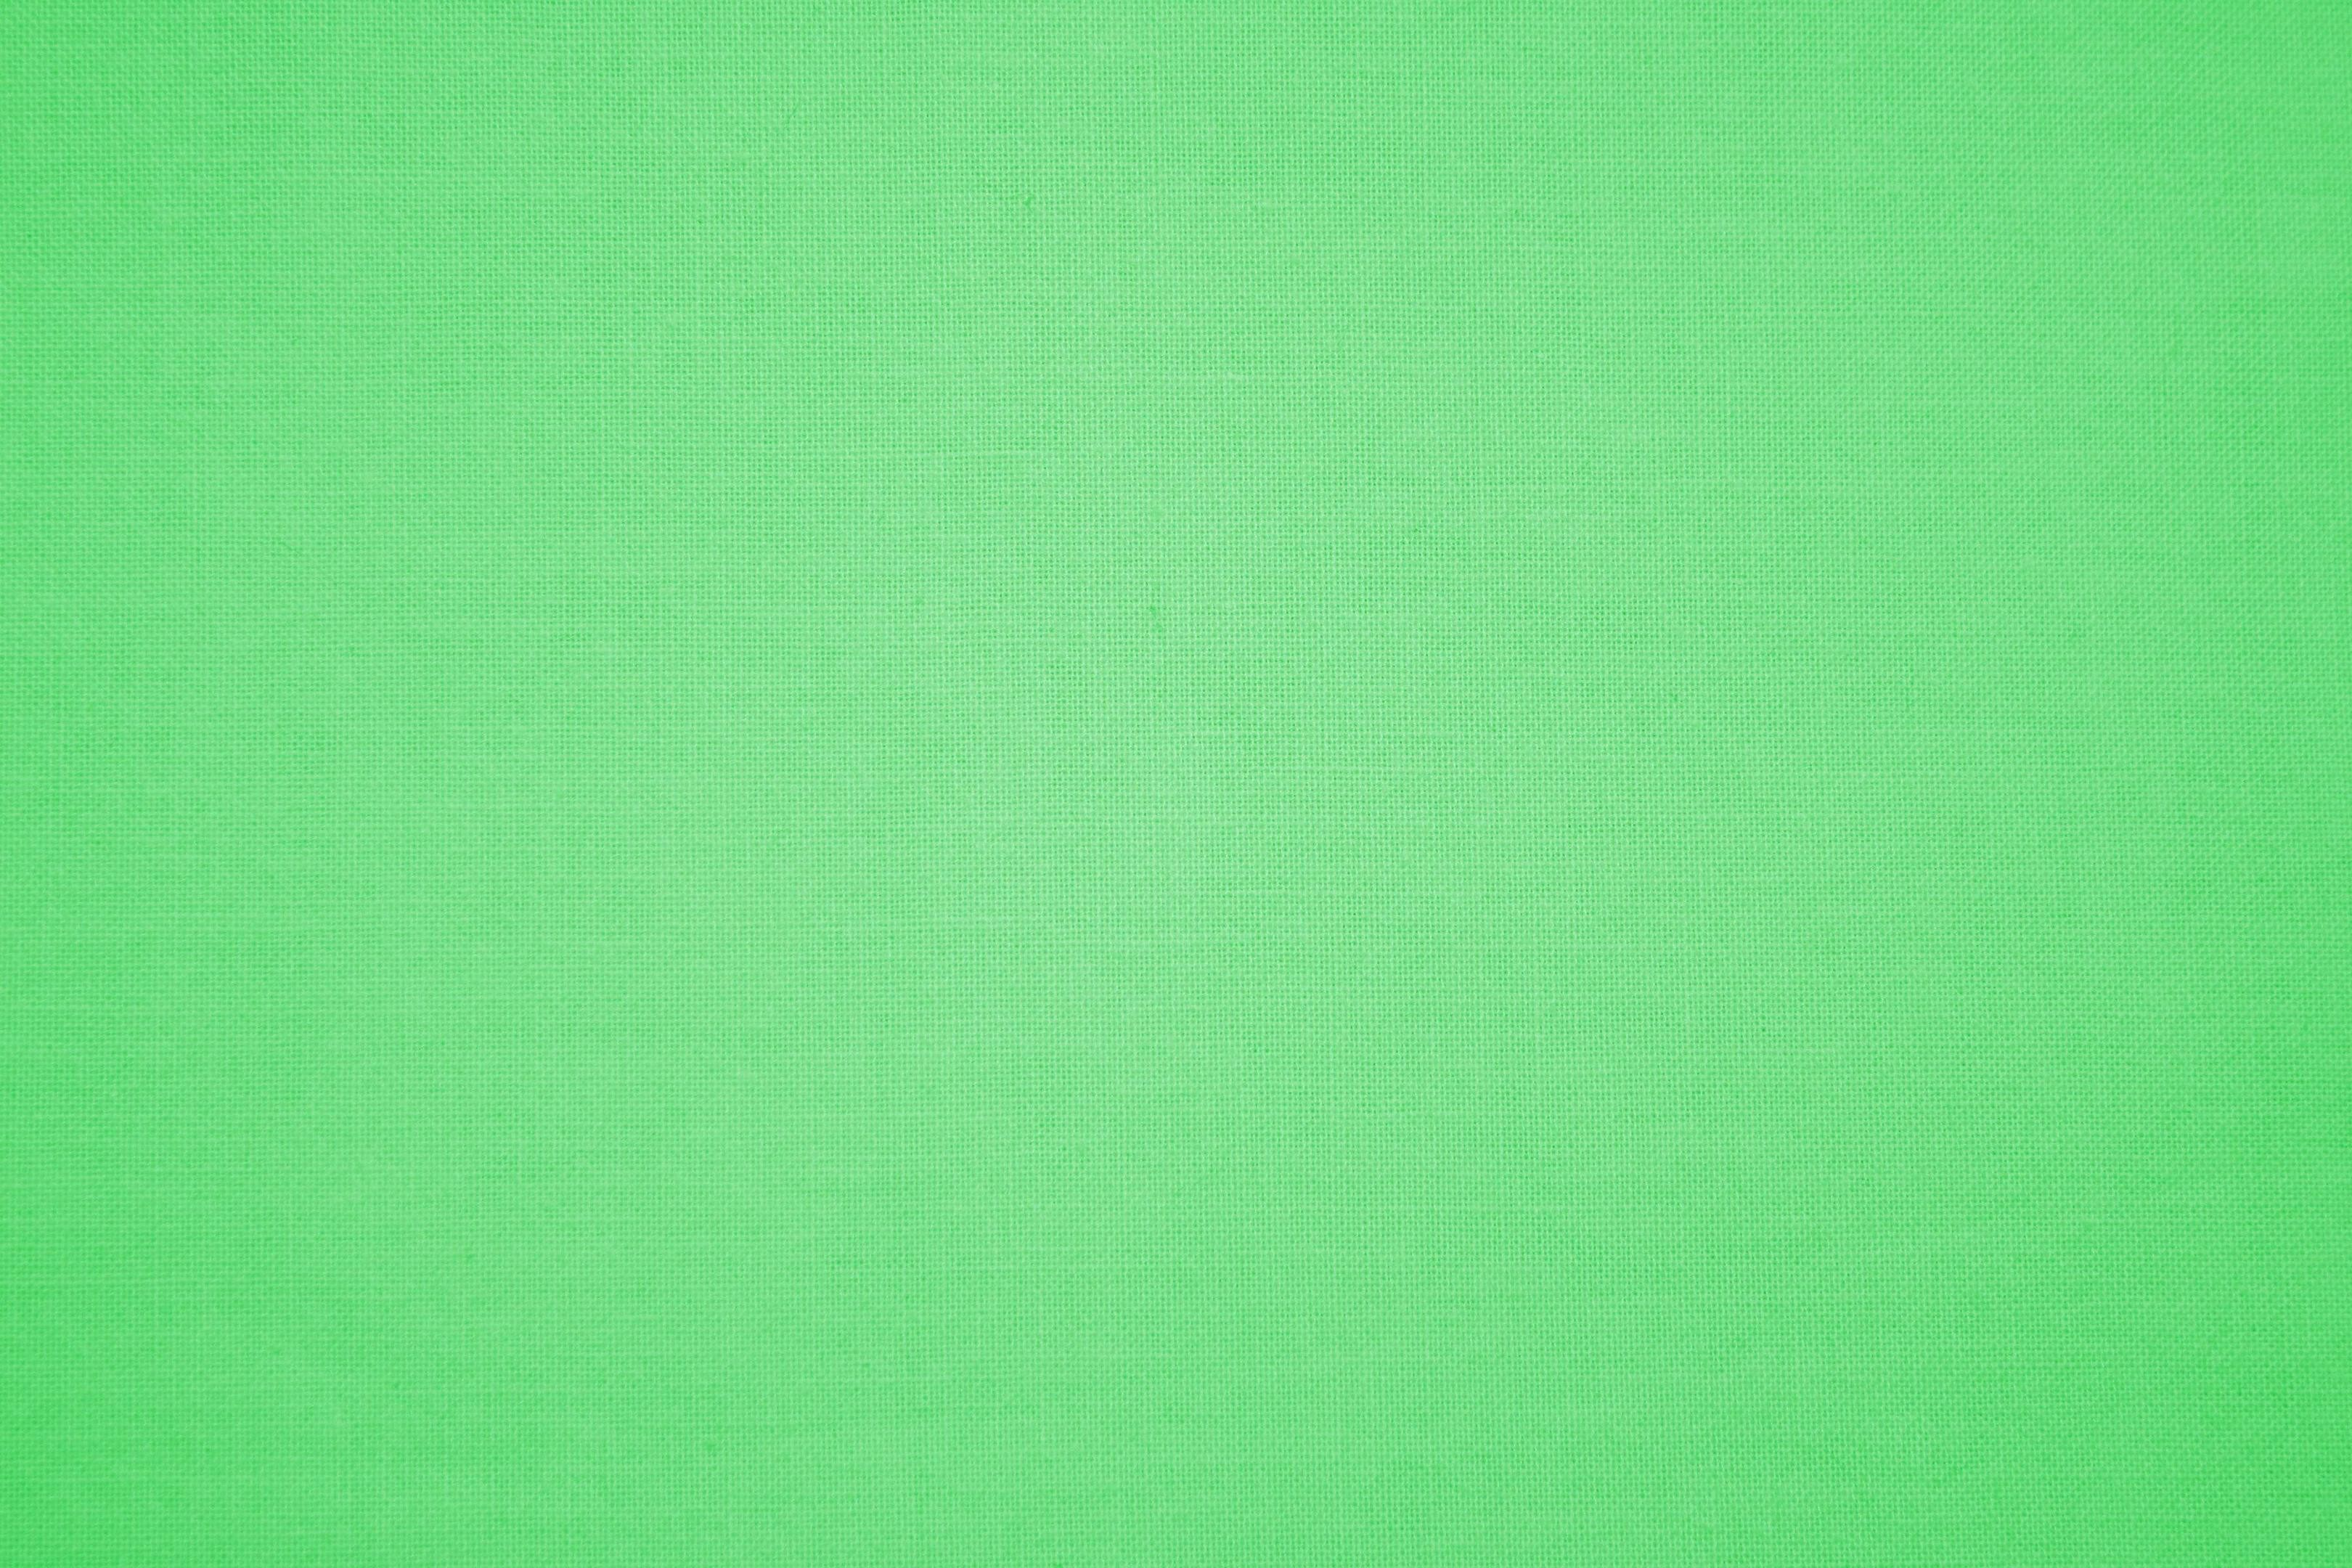 3240x2160 Light Green Wallpaper Desktop 23994 HD Pictures | Top Background Free